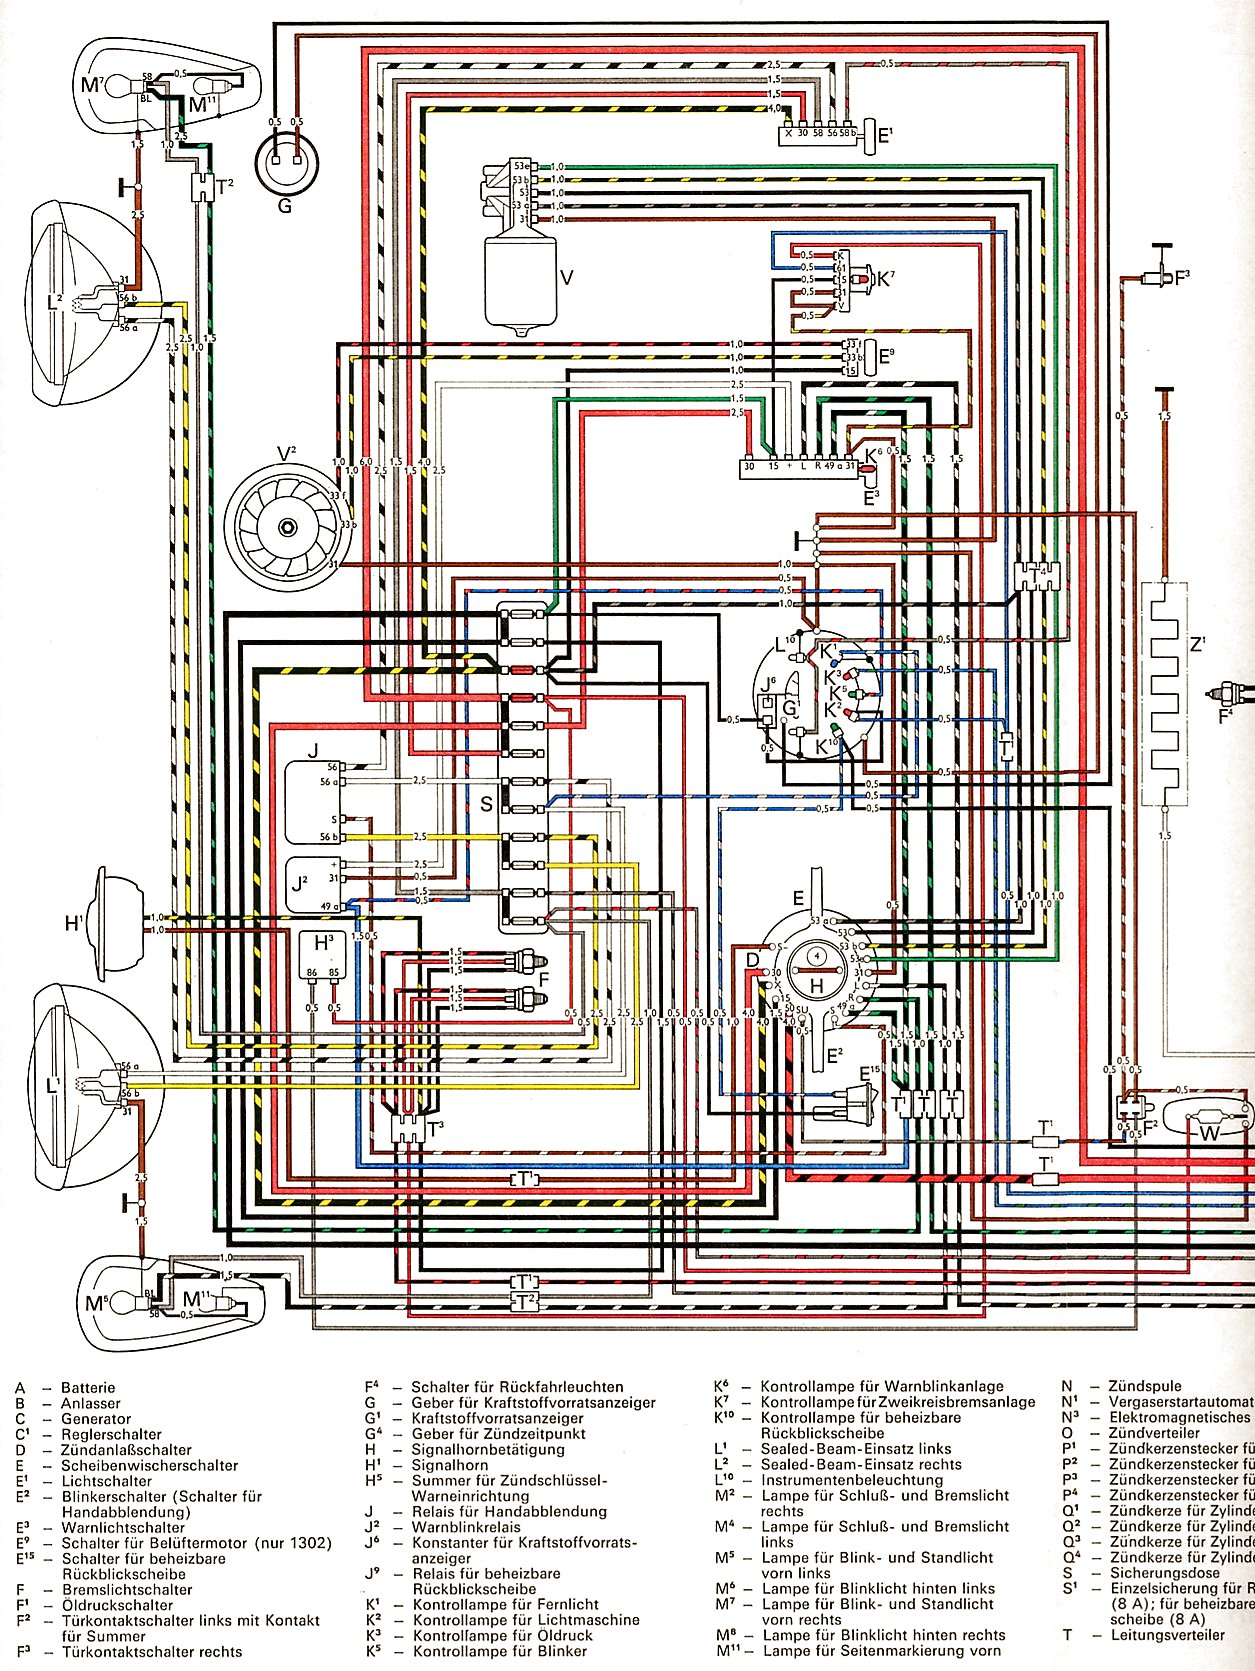 72 Beetle Wiring Diagram | Wiring Diagram on